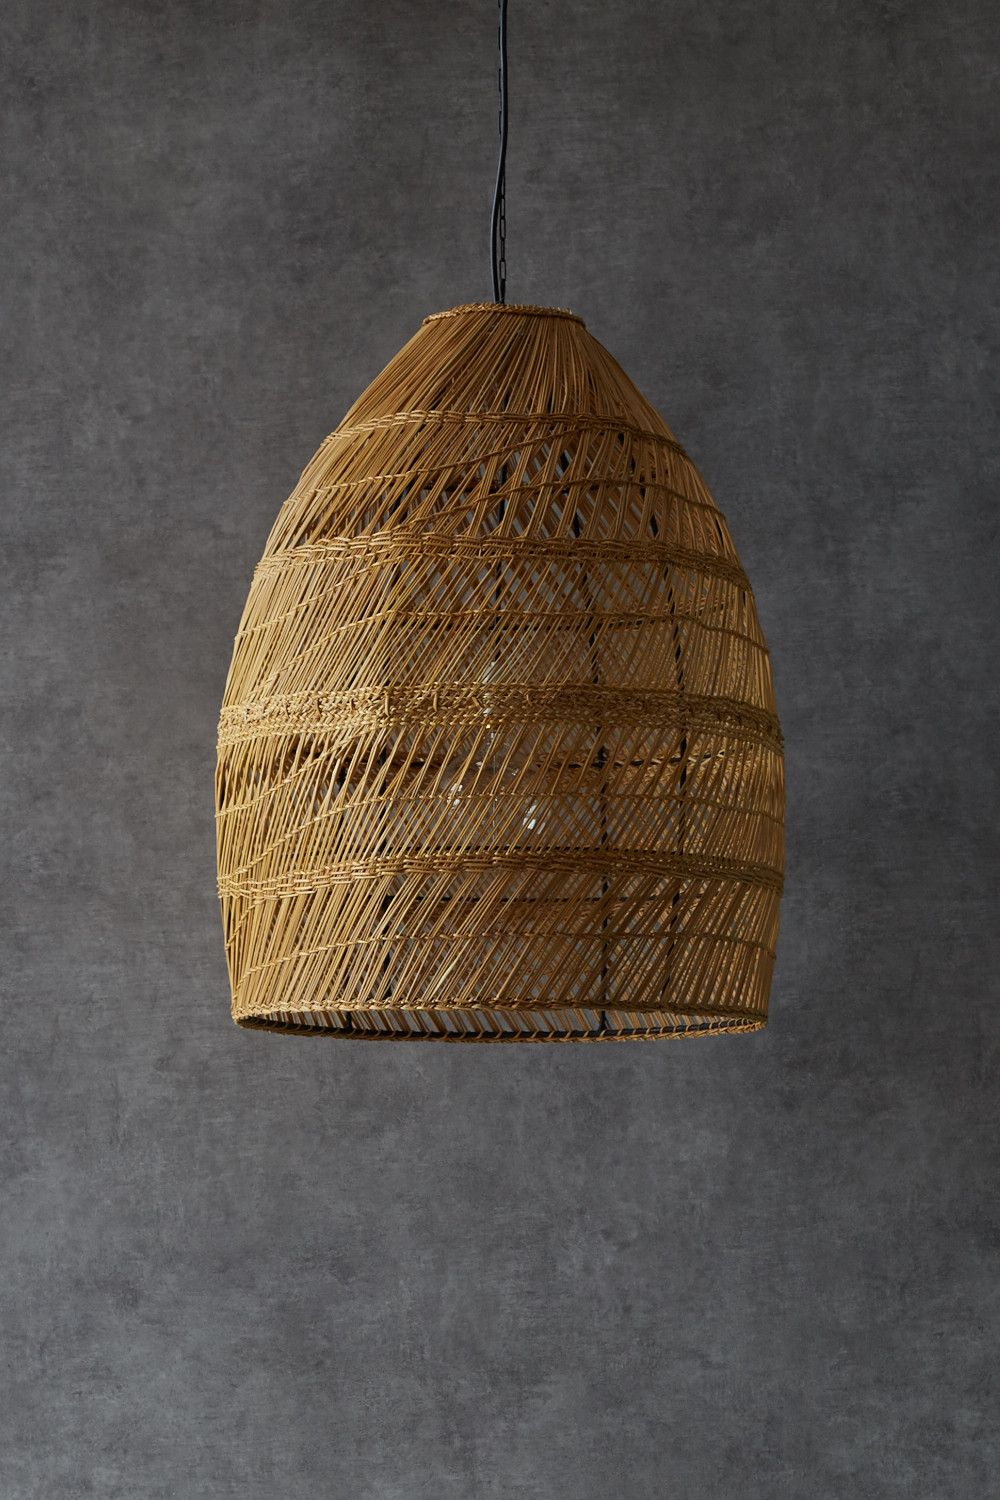 Seagrass lampshade living spaces metals and spaces this lampshade is hand woven from seagrass on a metal frame and has a chain for aloadofball Images